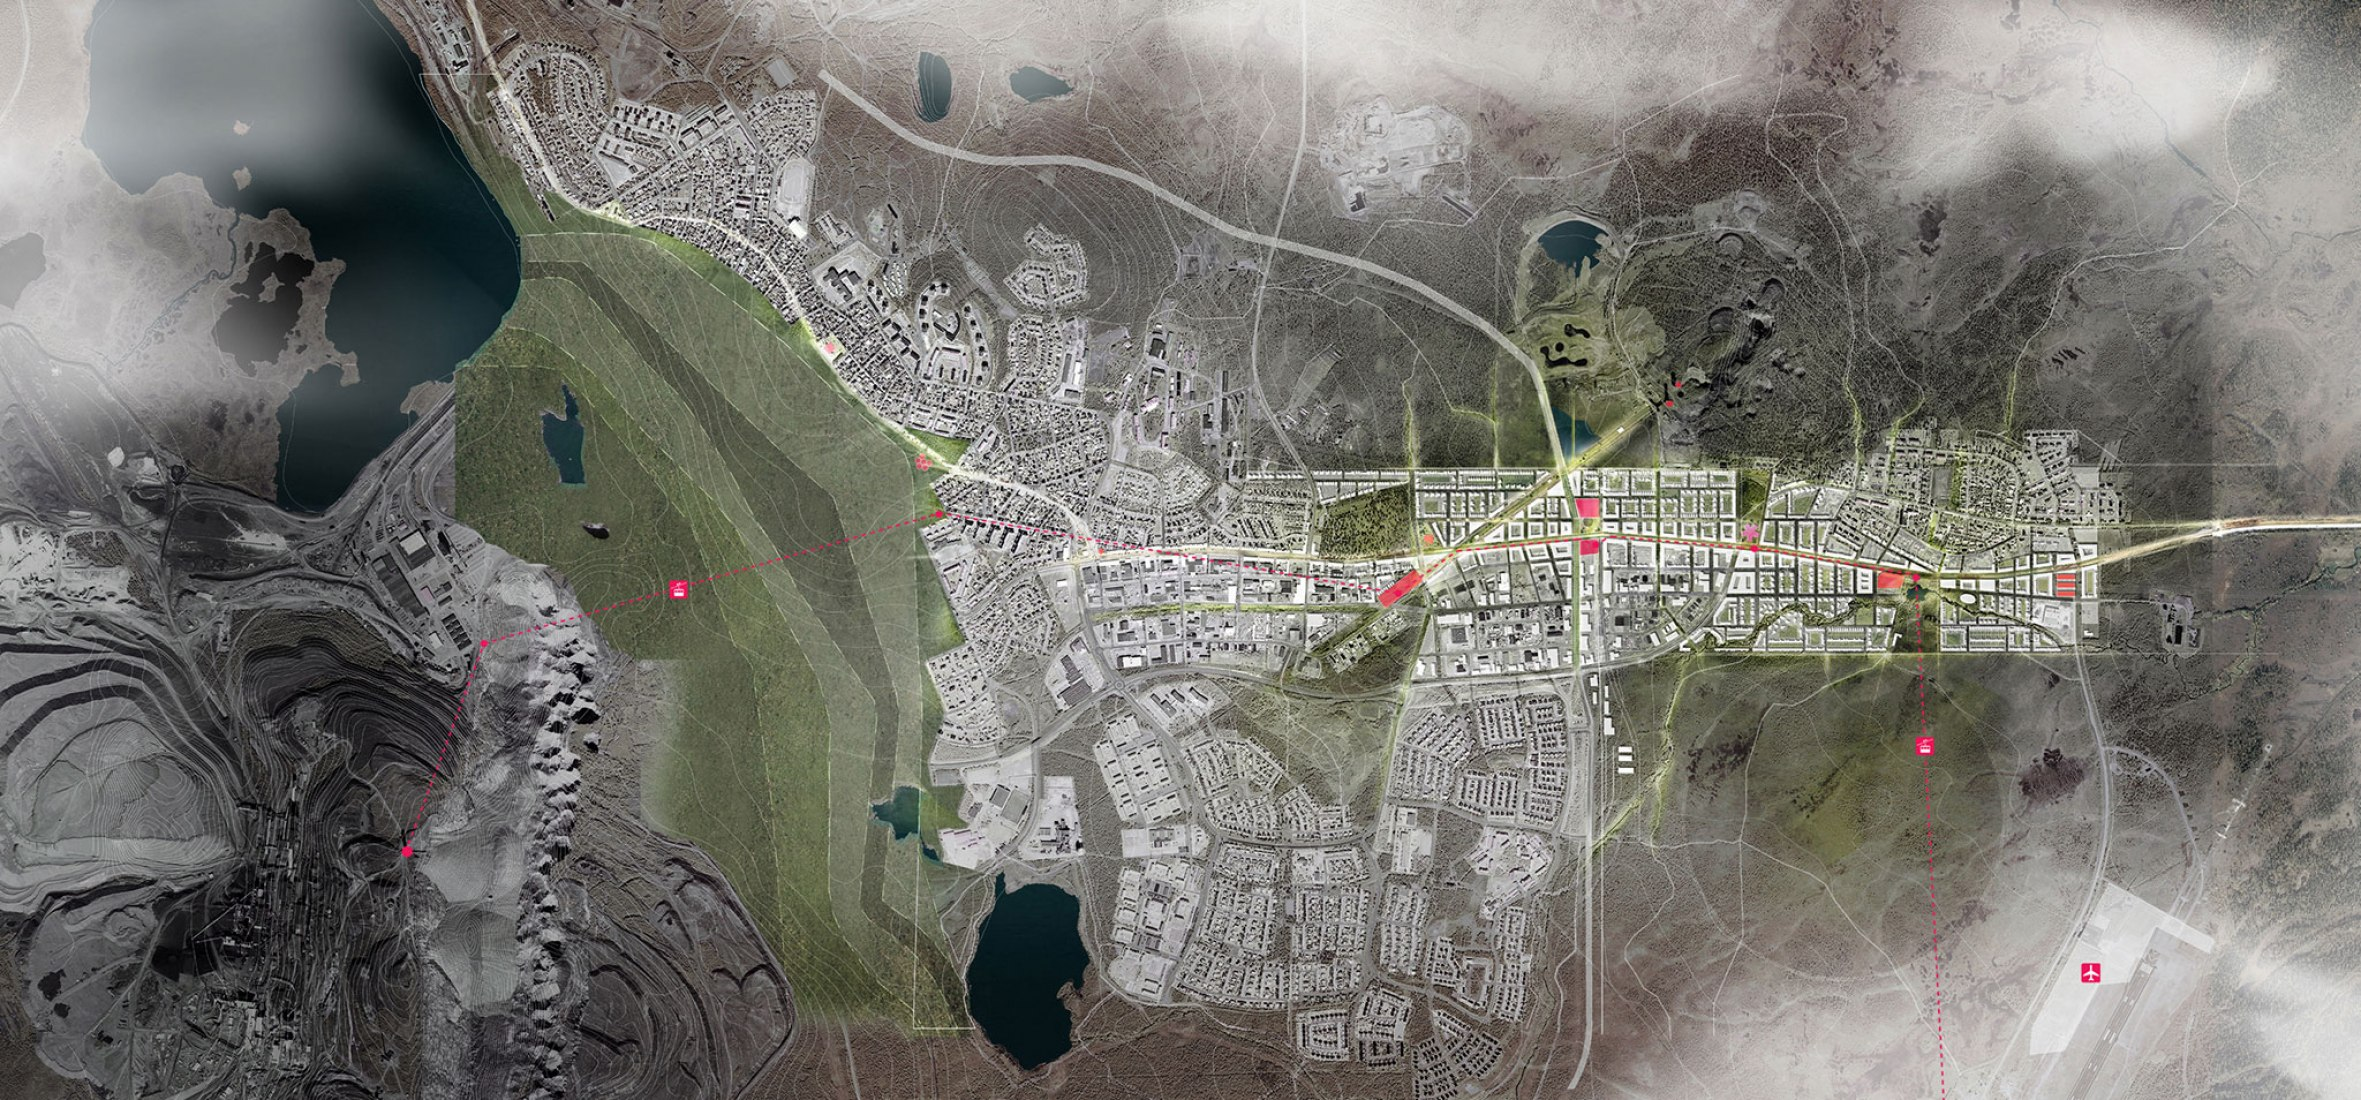 Overview. New Kiruna project. Image courtesy of White and Tegmark.